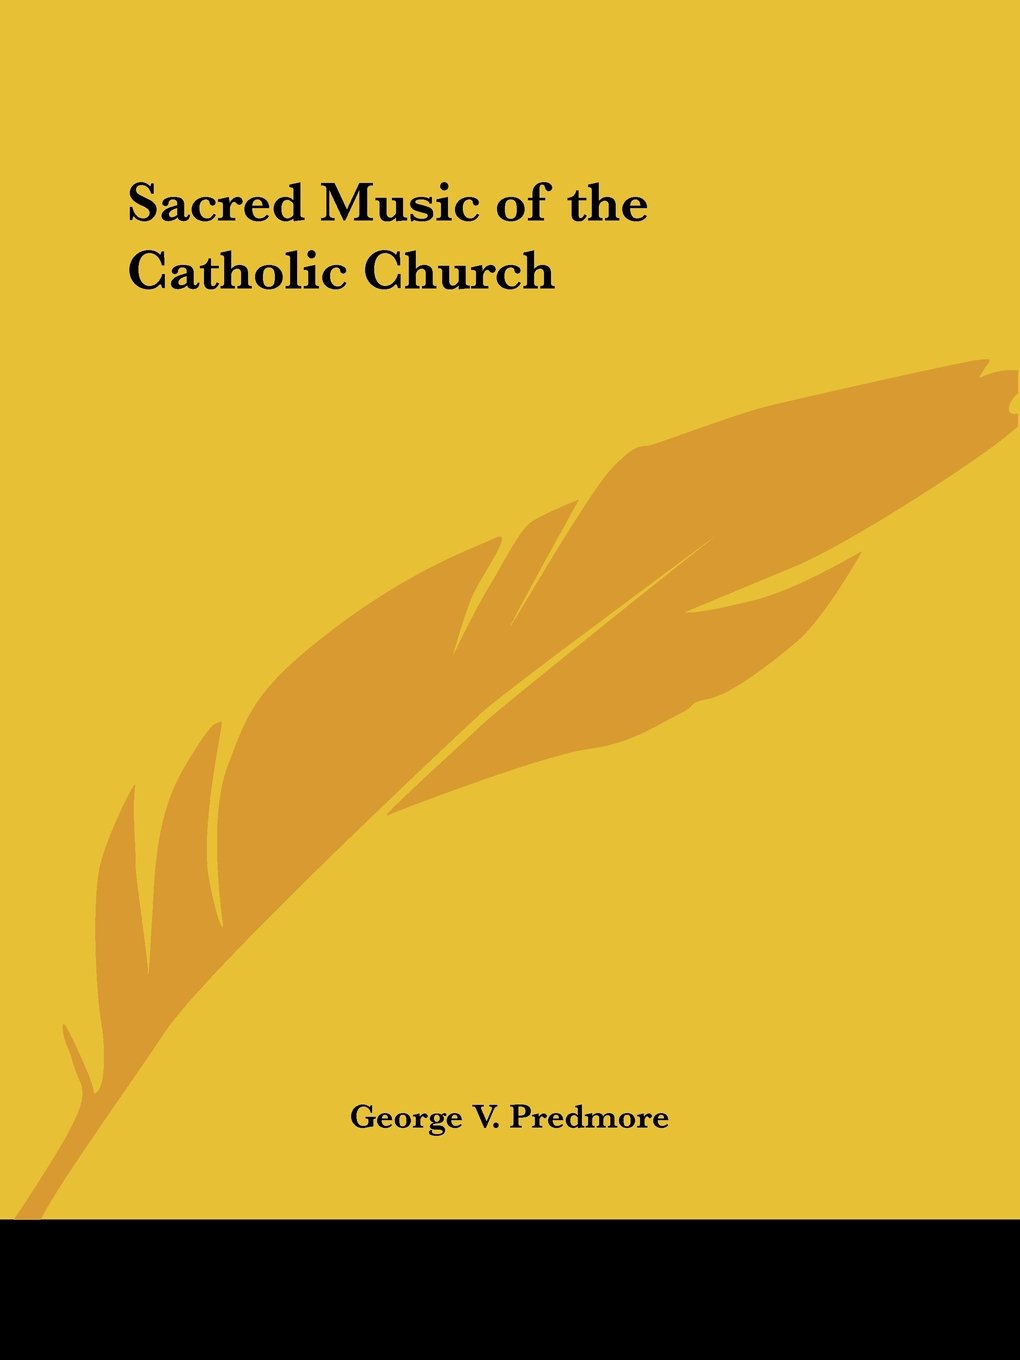 Sacred Music of the Catholic Church